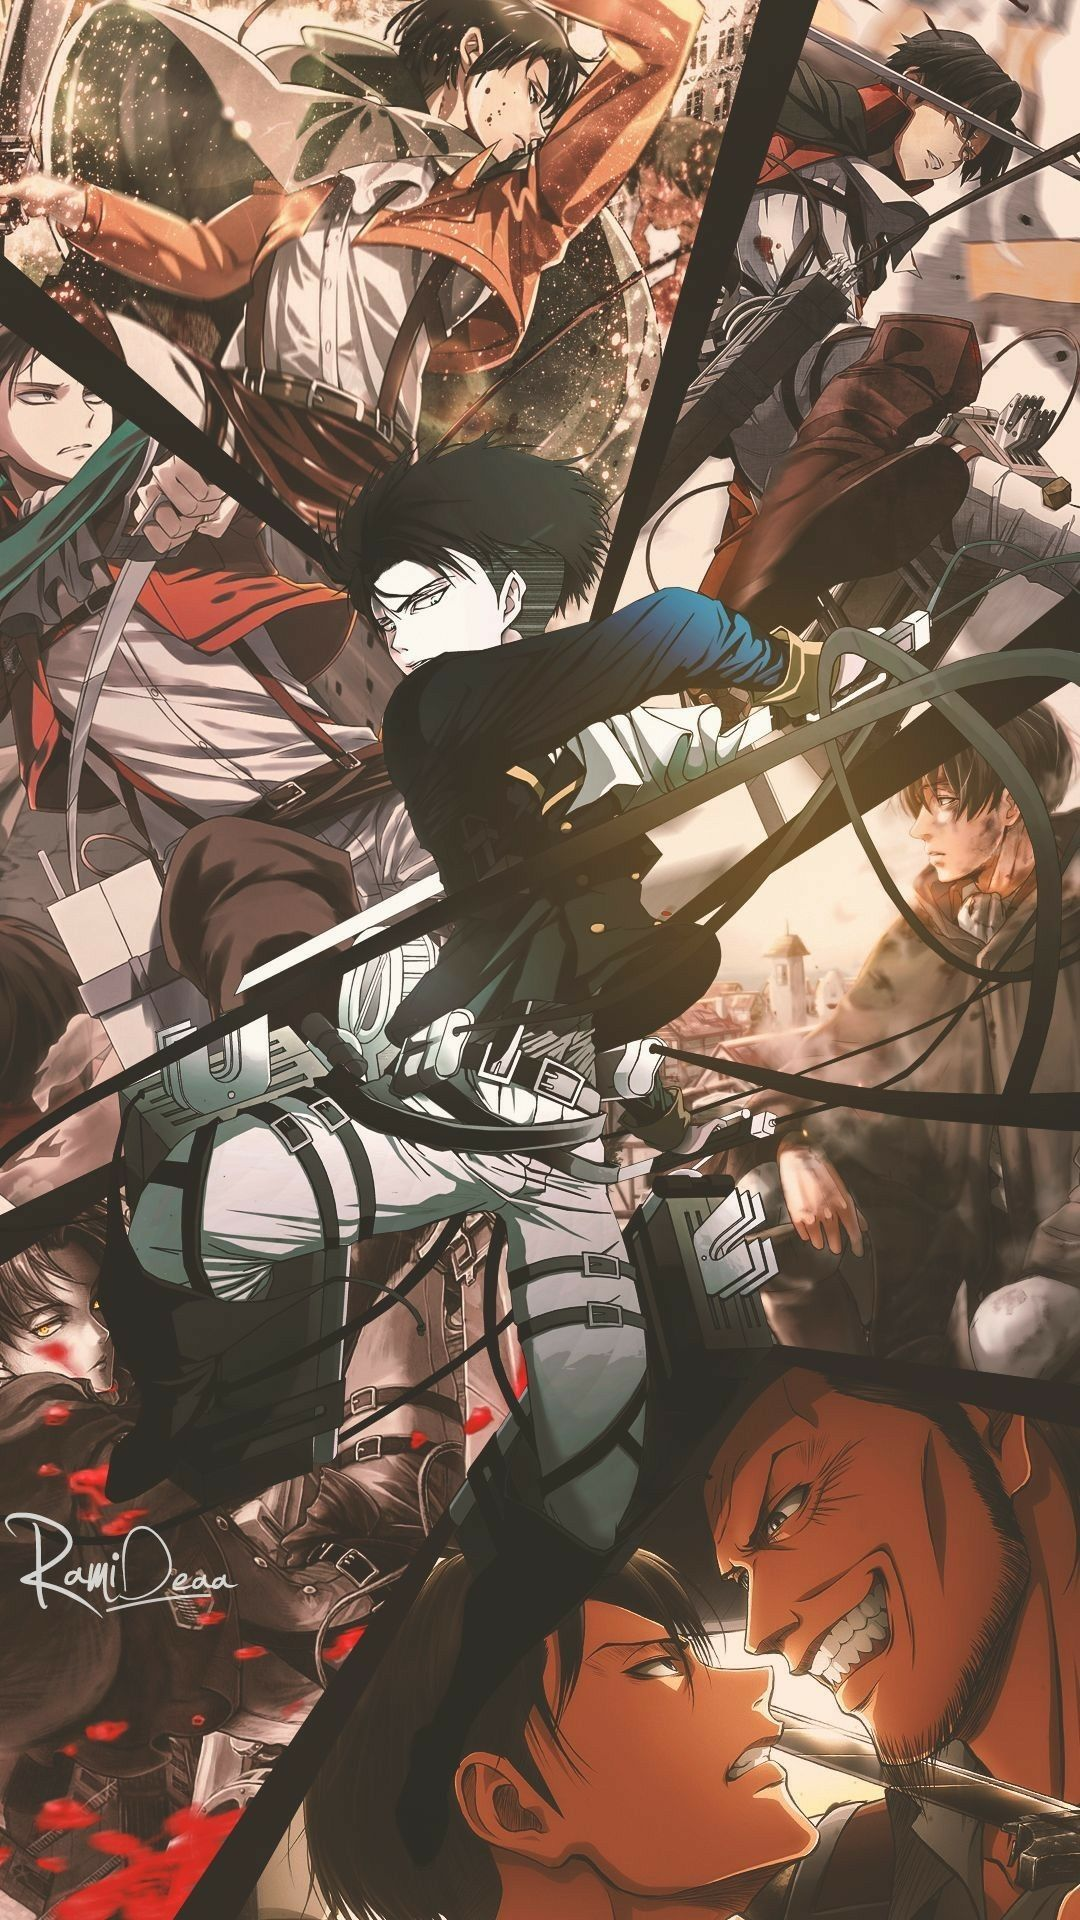 Pin by Cosmin on Wallpaper Anime, Attack on titan art